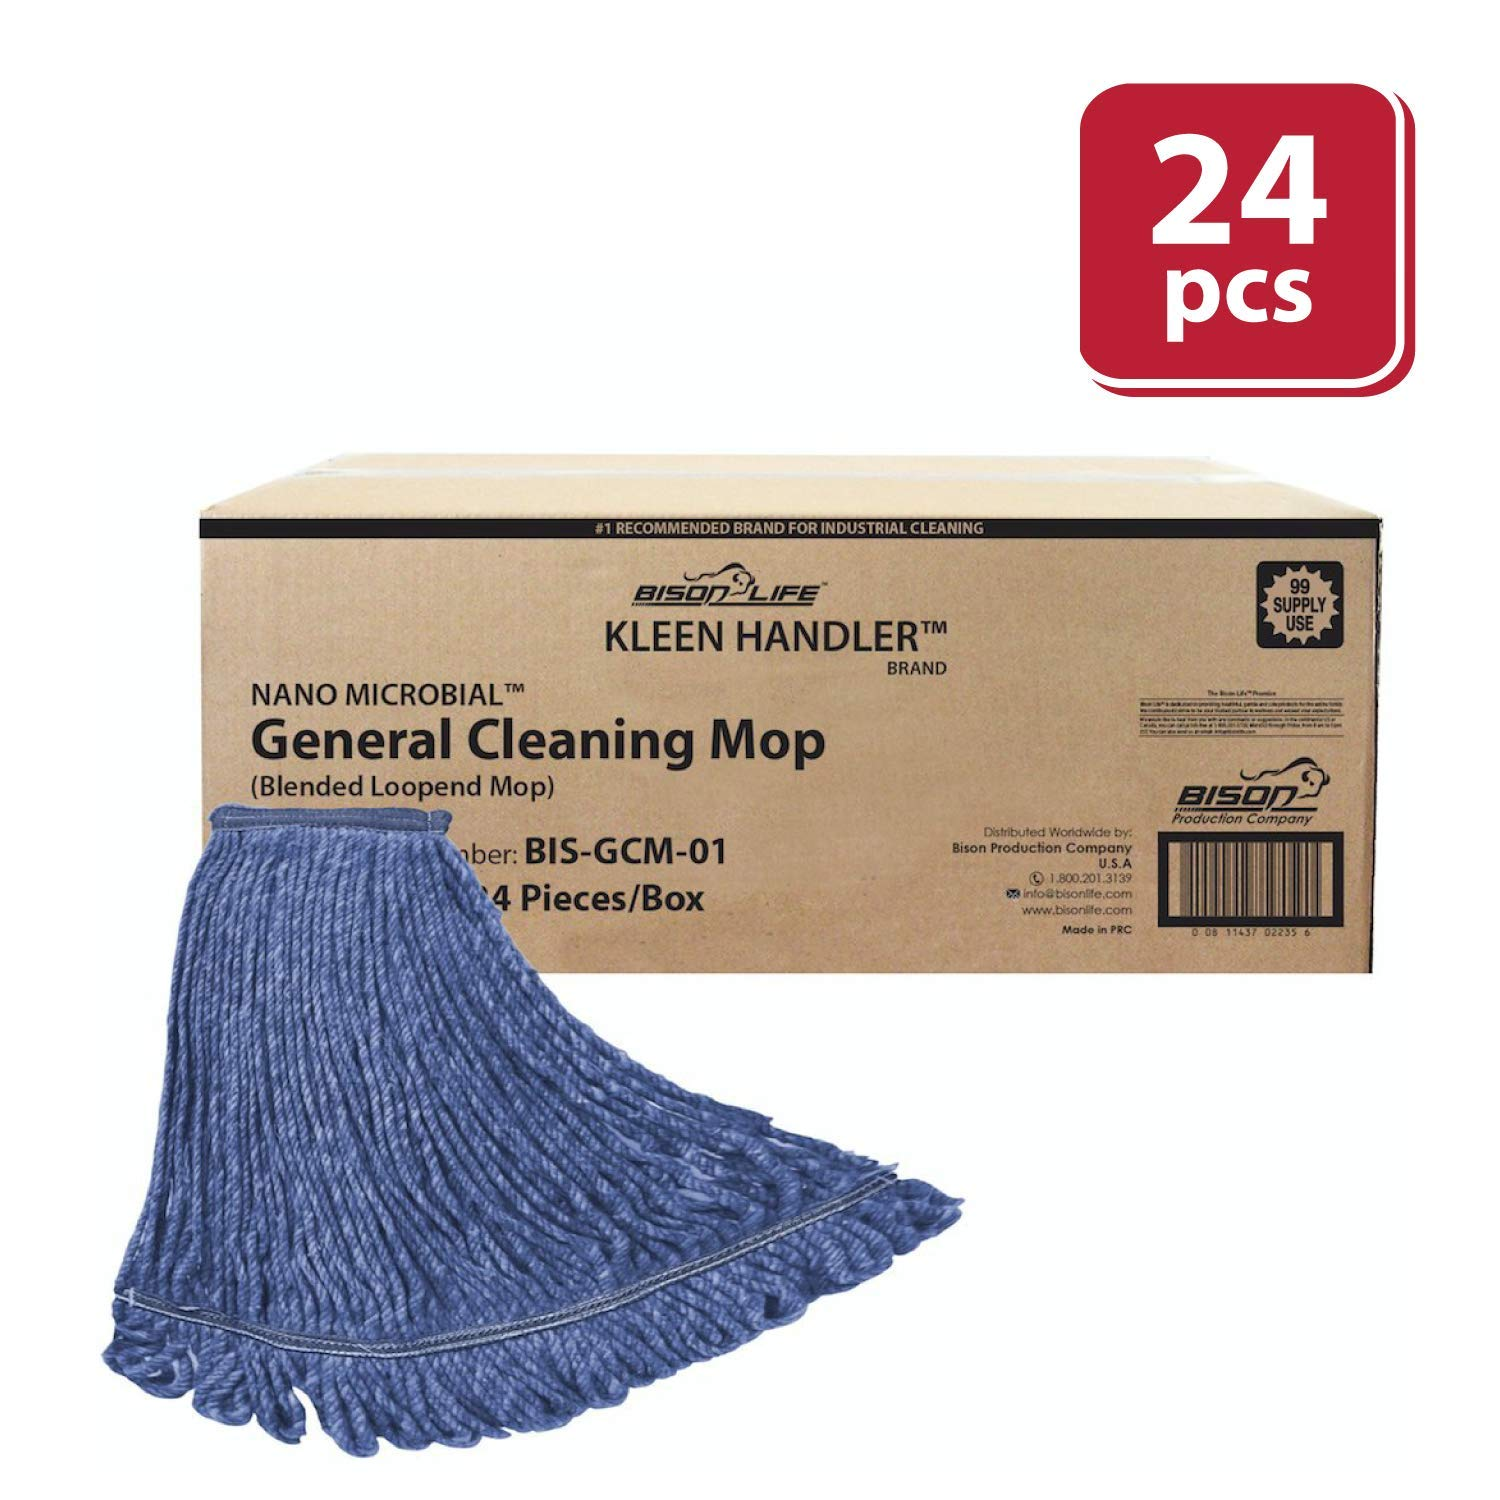 KLEEN HANDLER HEAVY DUTY Commercial Mop Head Replacement, Wet Industrial Blue Cotton Looped End String Cleaning Mop Head Refill (Case of 24)